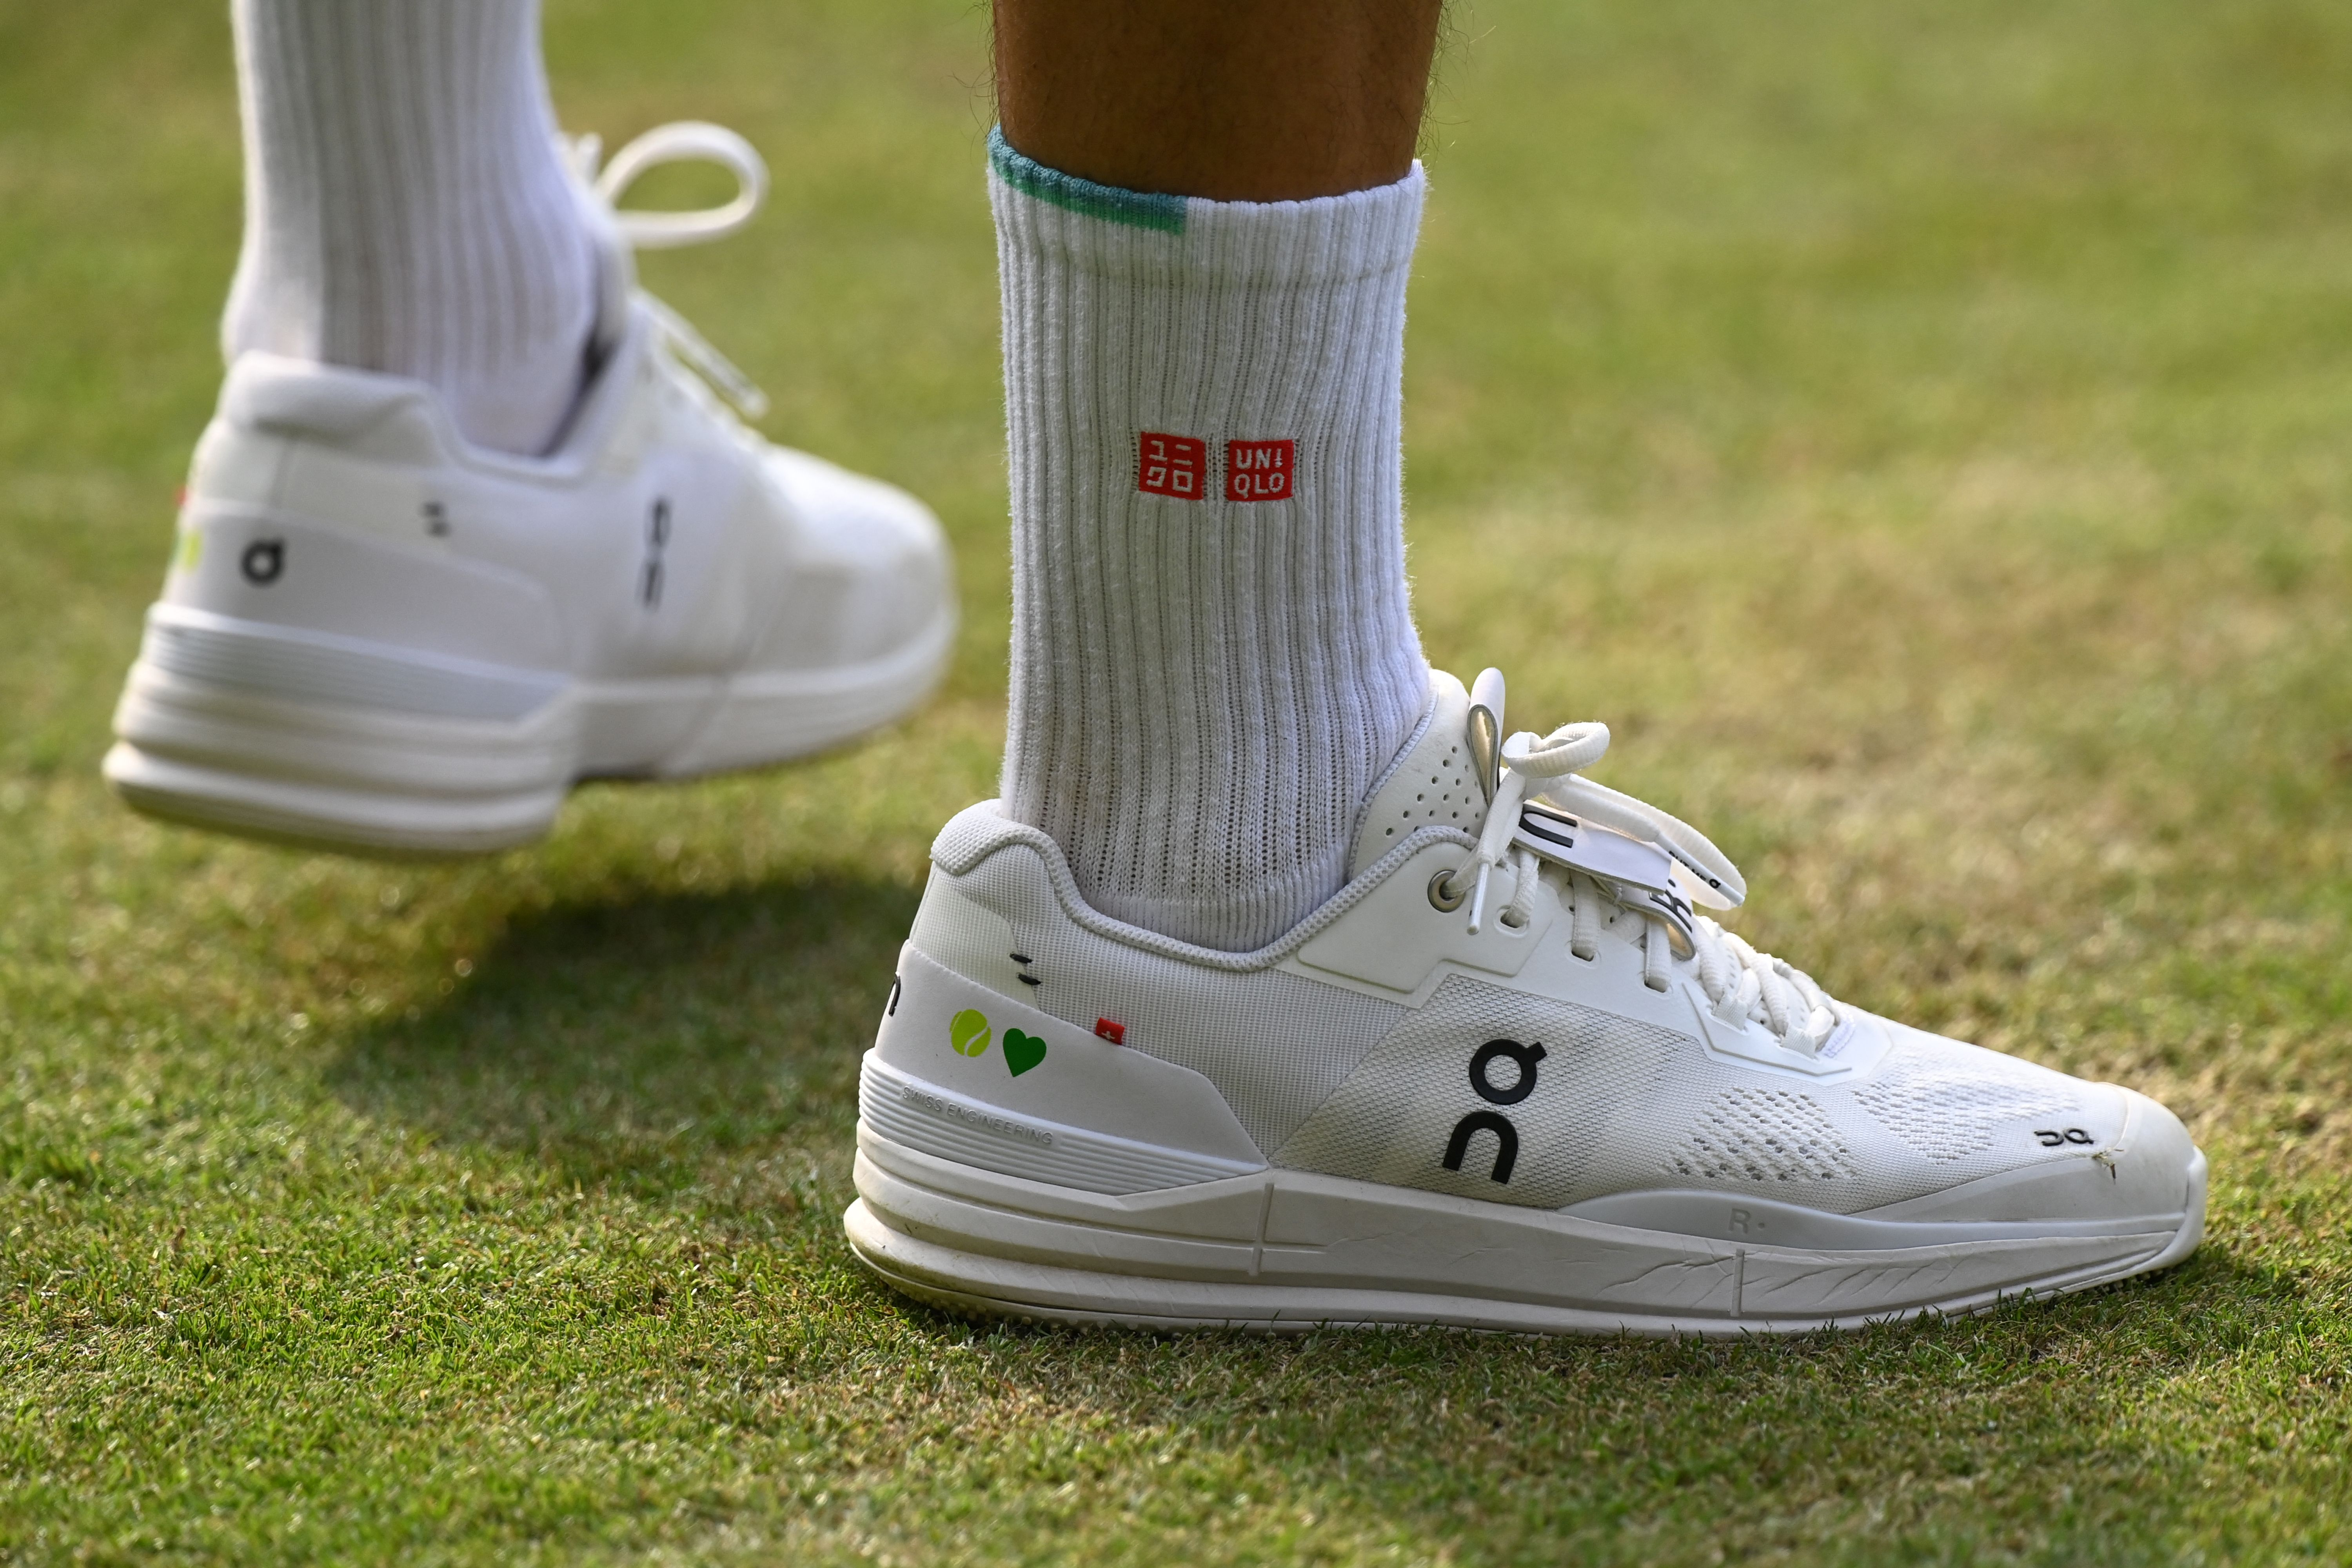 Roger Federer invested early in this shoe company — its stock has skyrocketed out of the gate